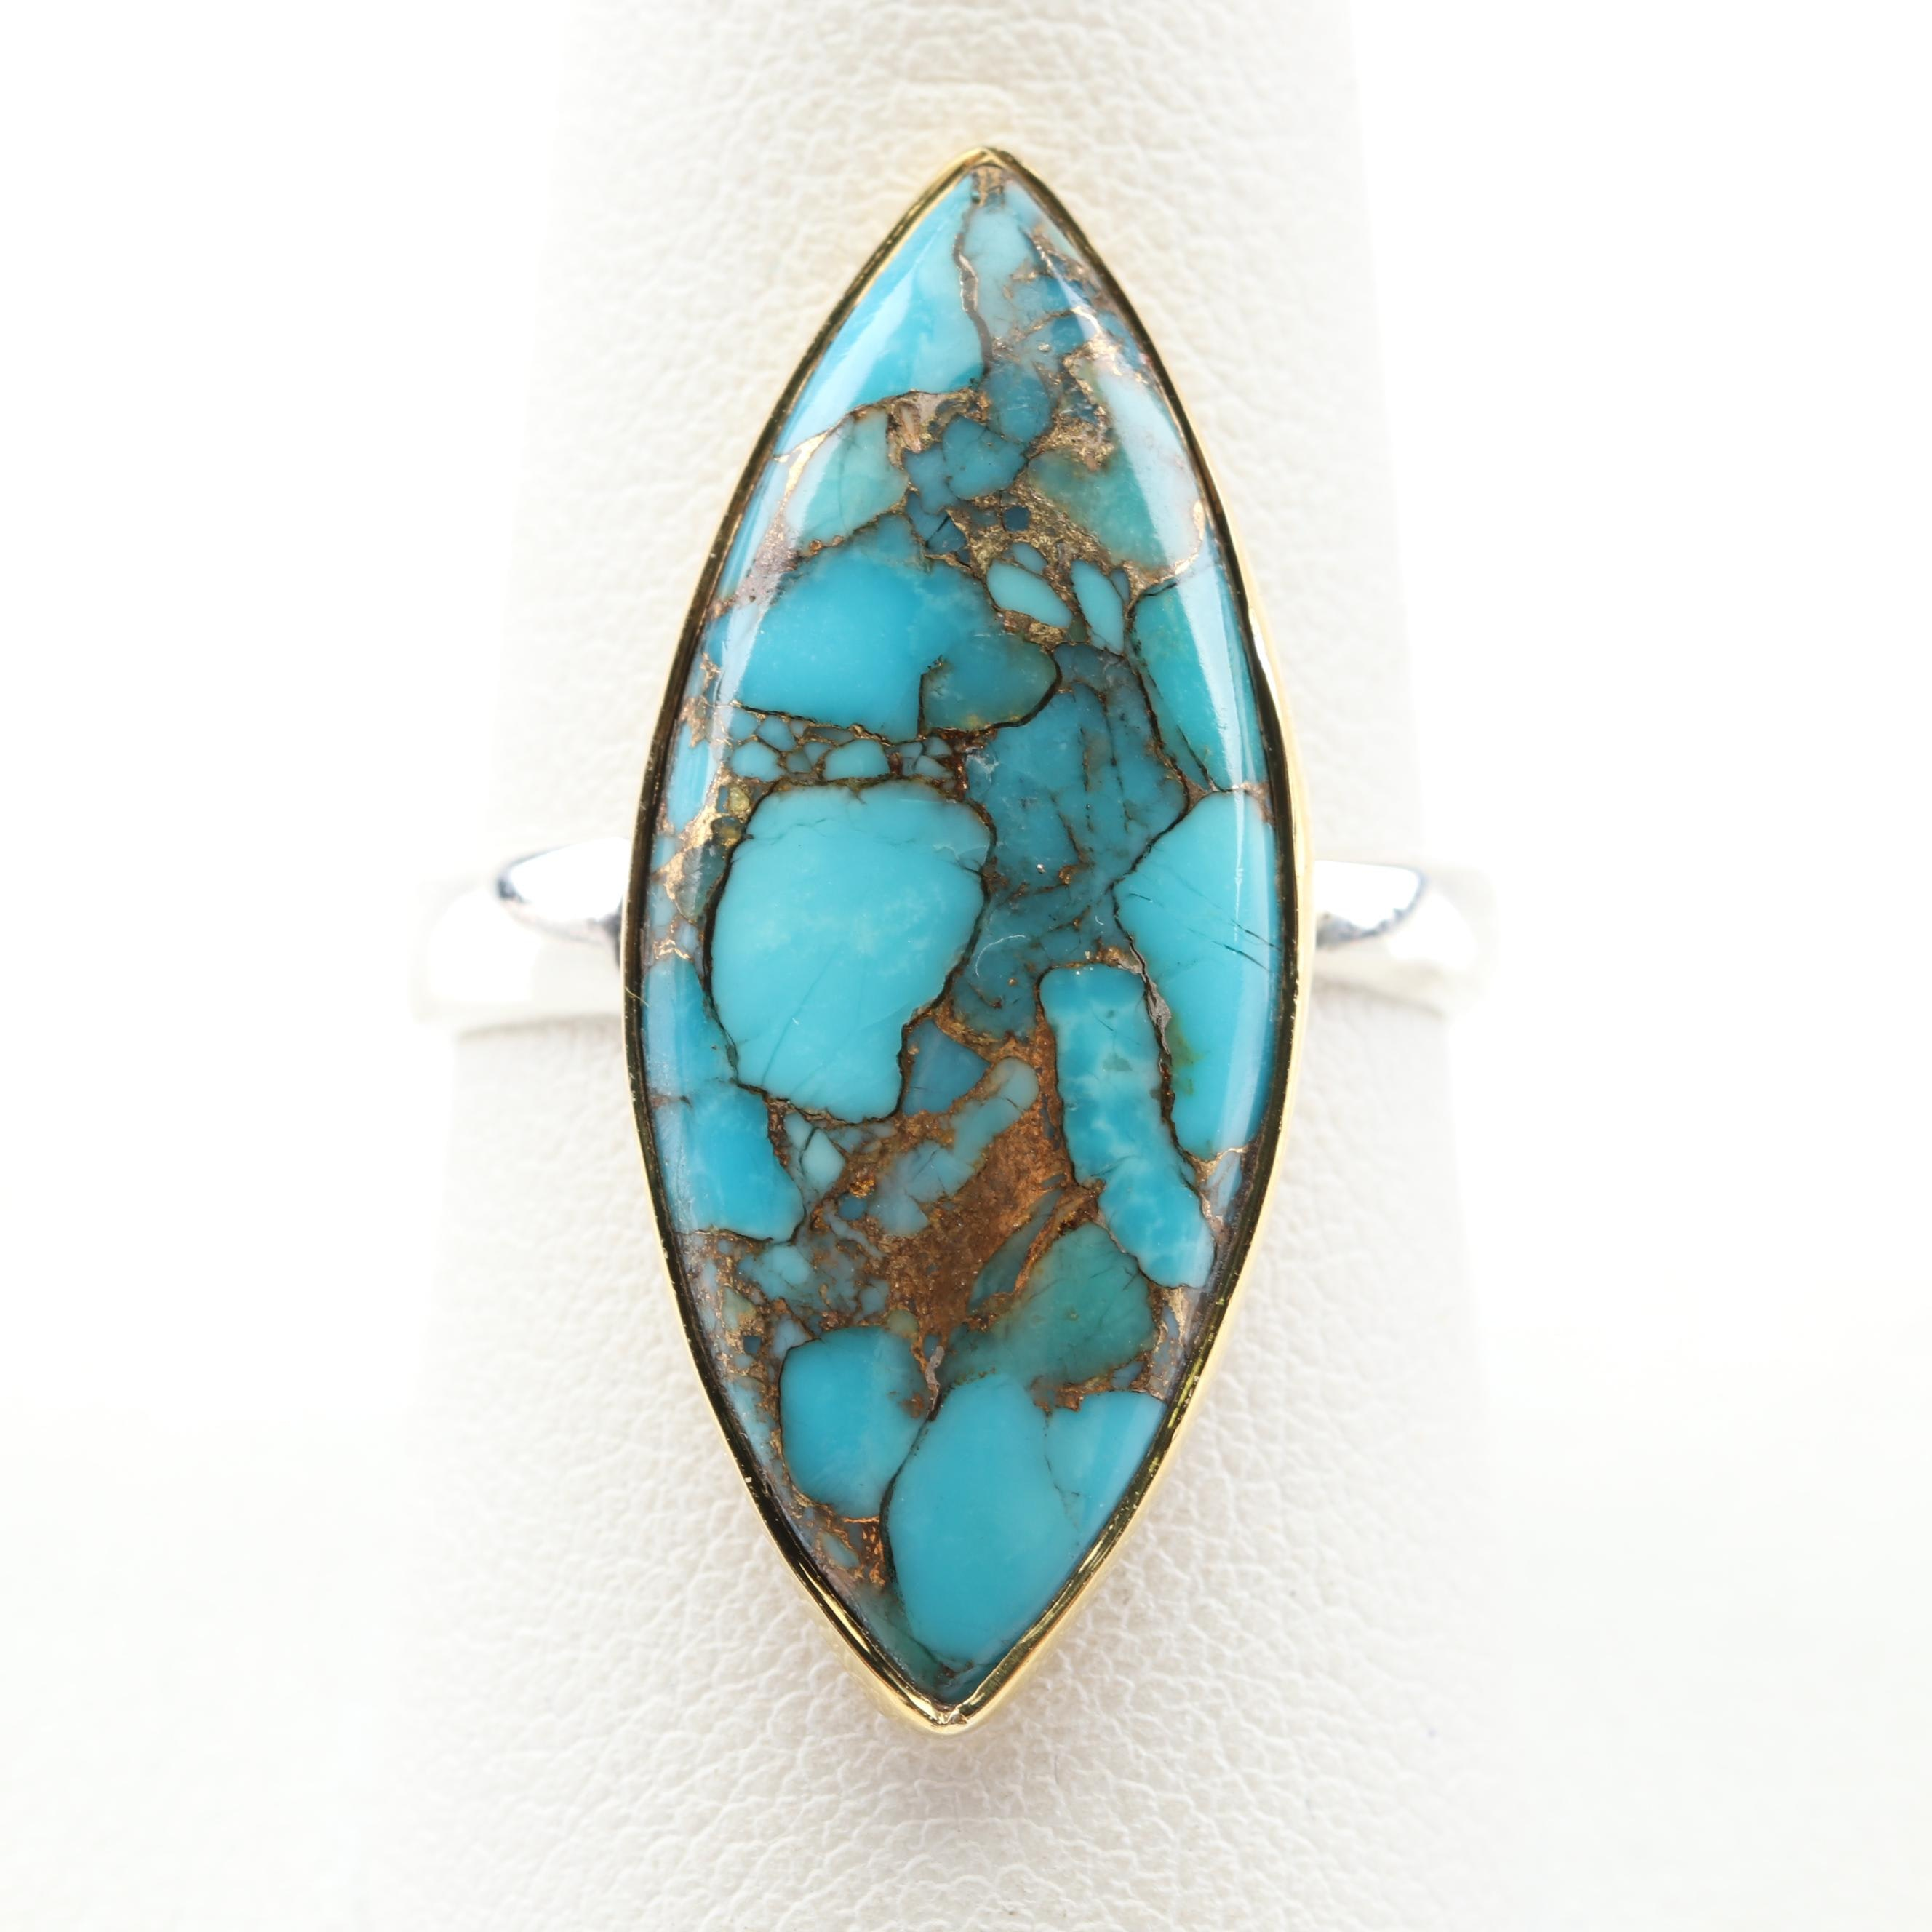 Sterling Silver Turquoise Ring with Gold Wash Accents